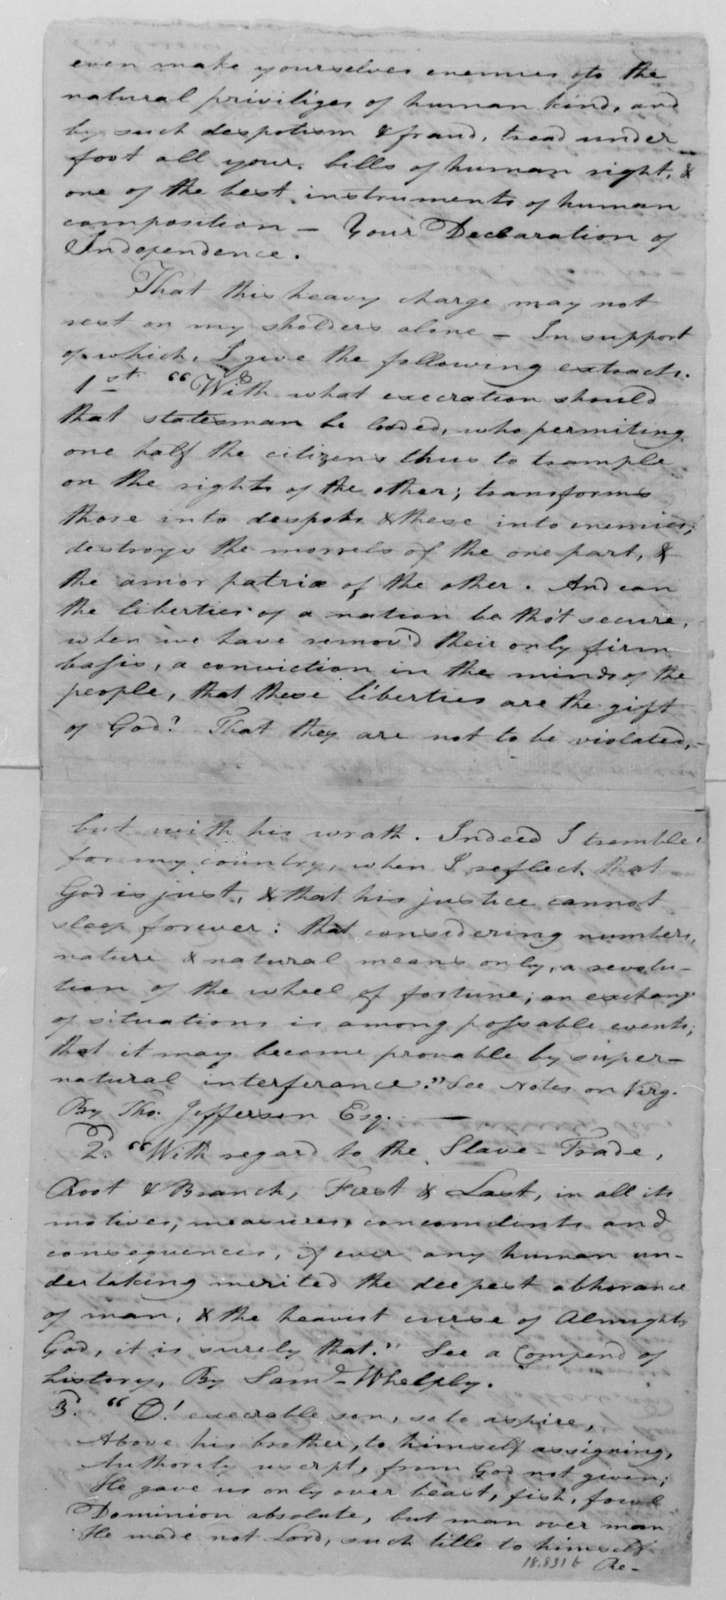 S. Potter to James Madison, February 7, 1813.